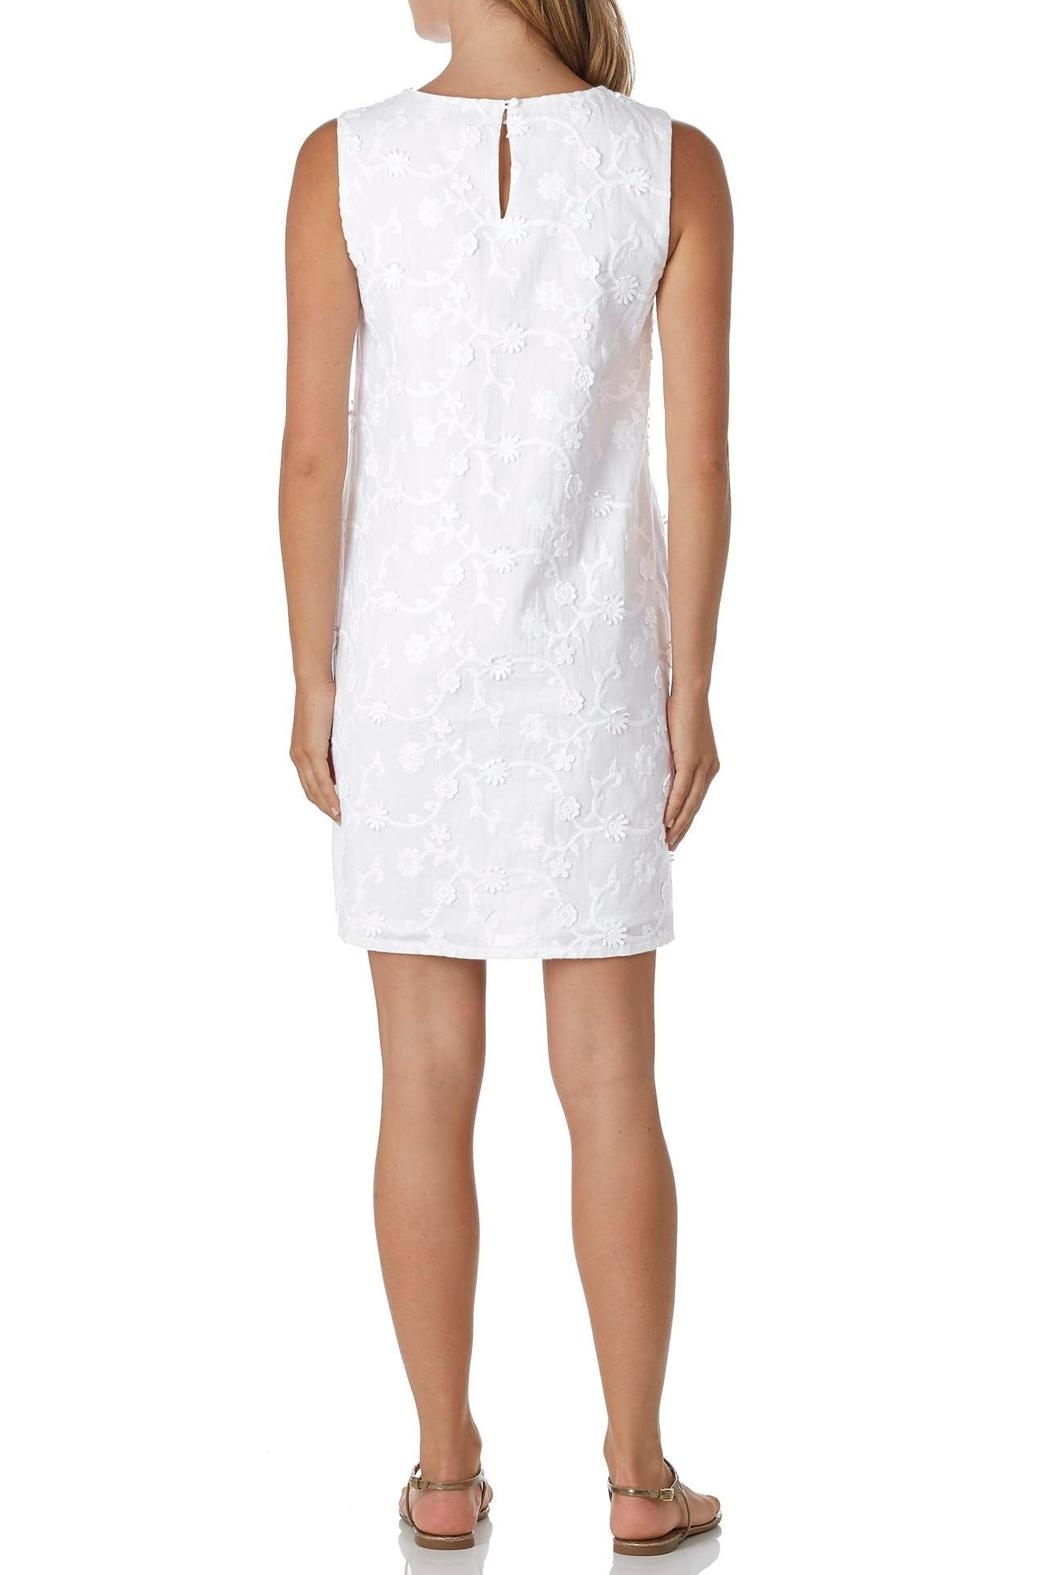 Jude Connally Melody Embroidered Dress - Front Full Image